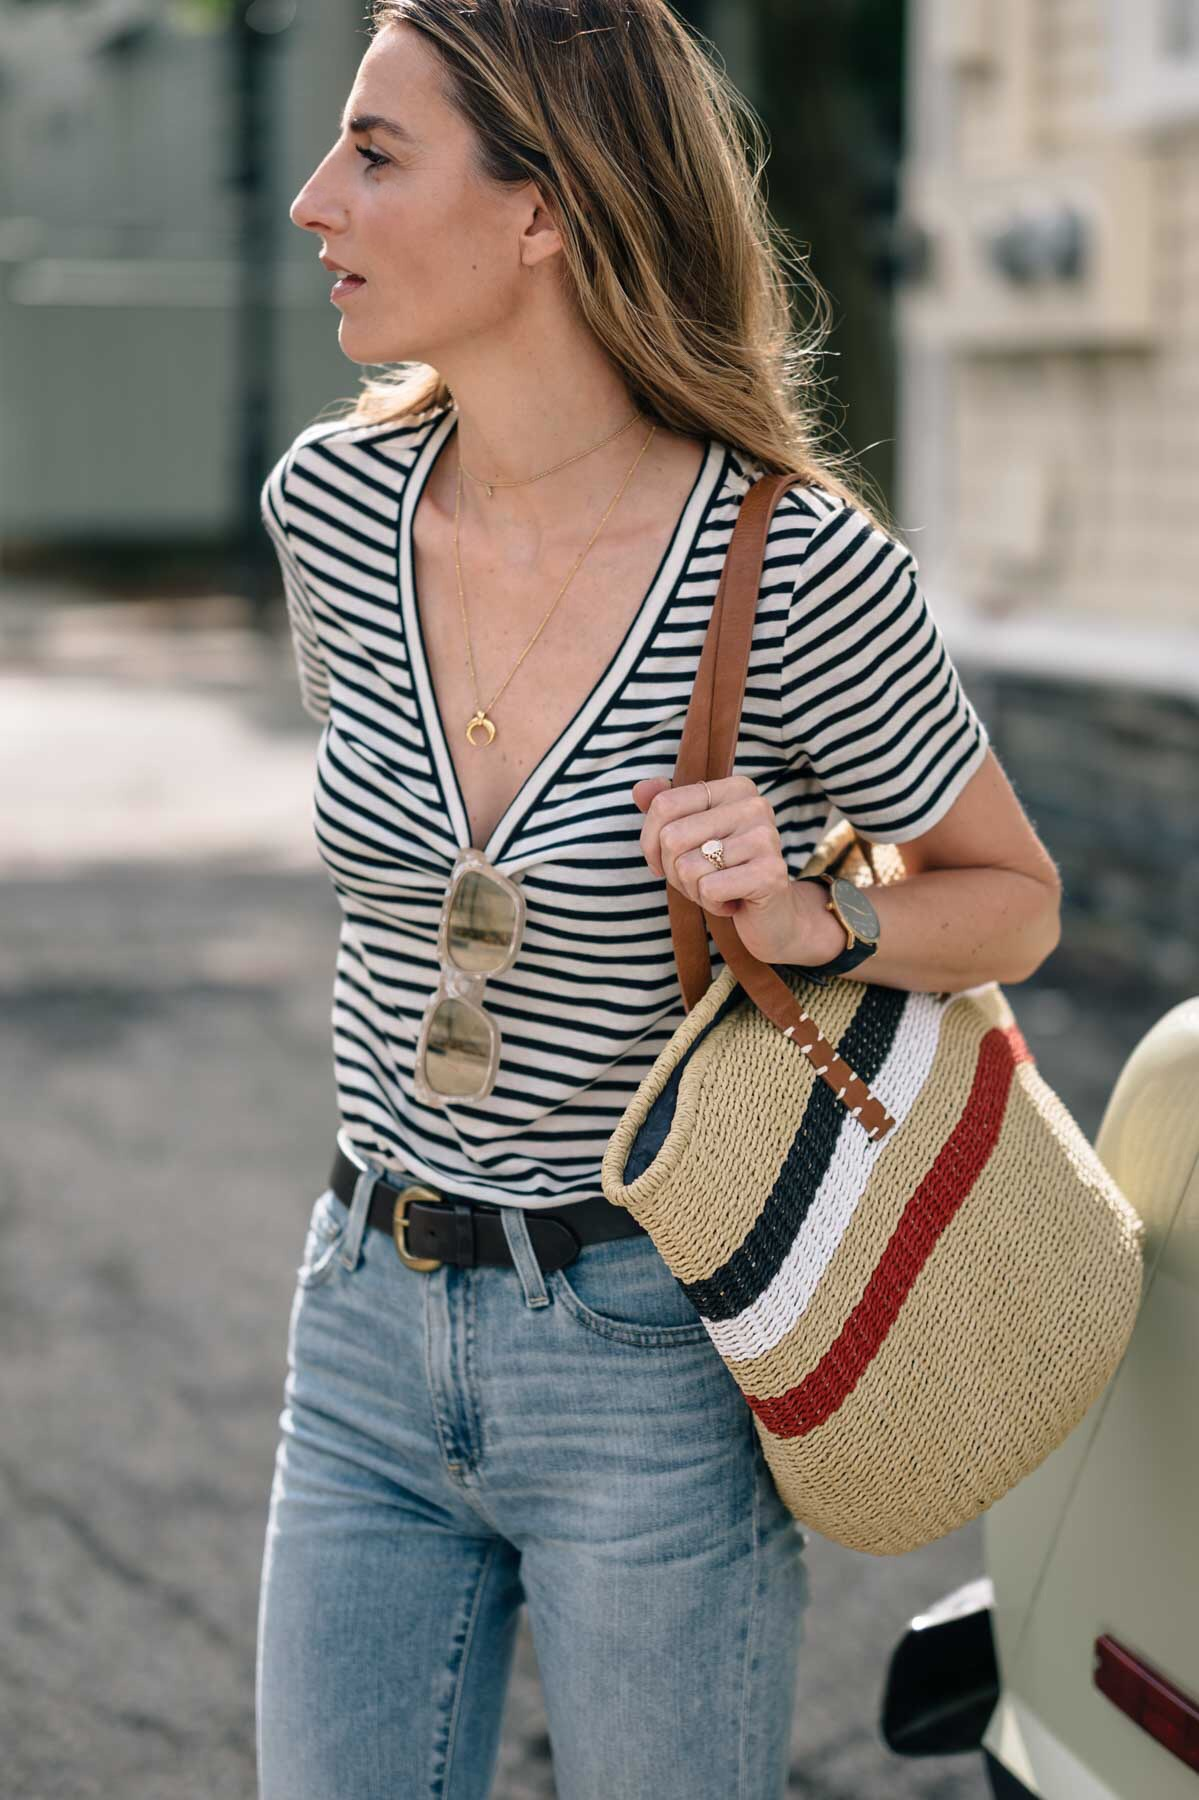 French Girl Beauty Tips For Effortlessly Radiant Skin: How To Nail French Girl Style This Summer